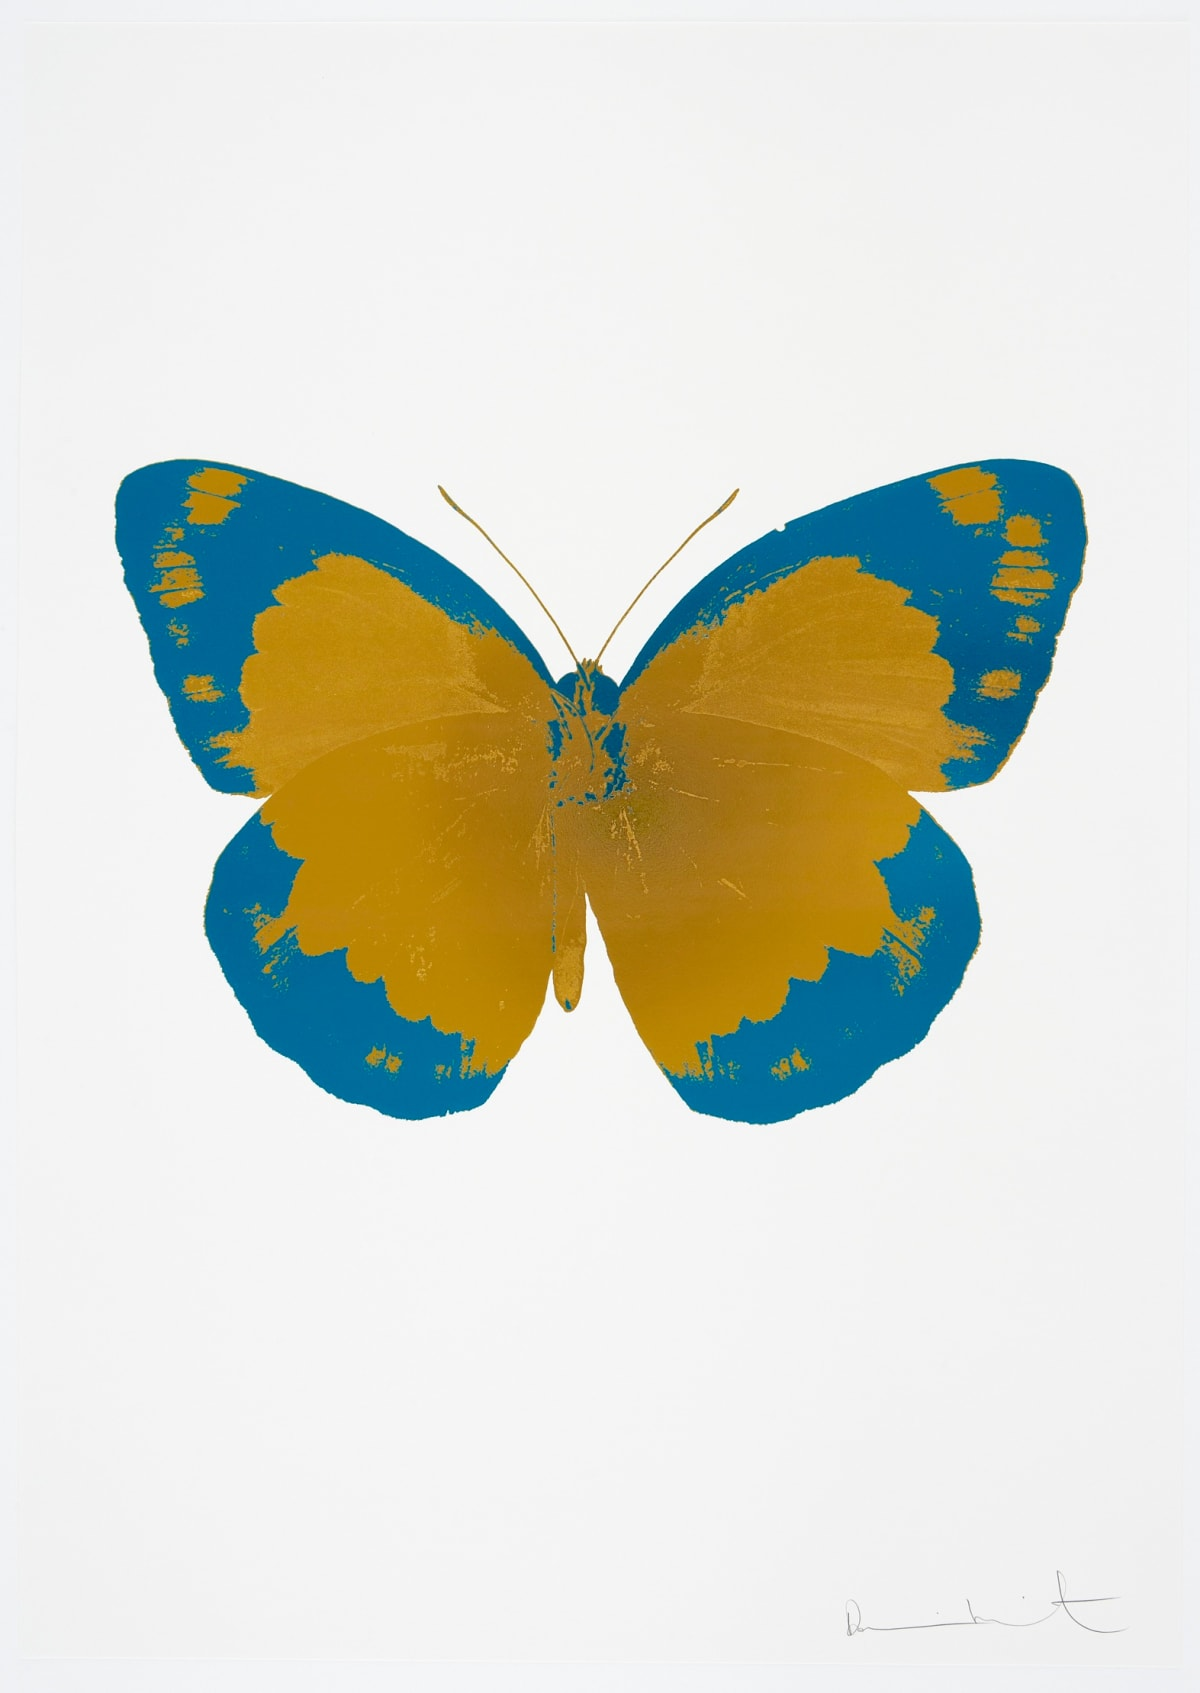 Damien Hirst The Souls II - Paradise Copper/Turquoise/Blind Impression, 2010 2 colour foil block on 300gsm Arches 88 archival paper. Signed and numbered. Published by Paul Stolper and Other Criteria 72 x 51cm OC7818 / 658-1 Edition of 15